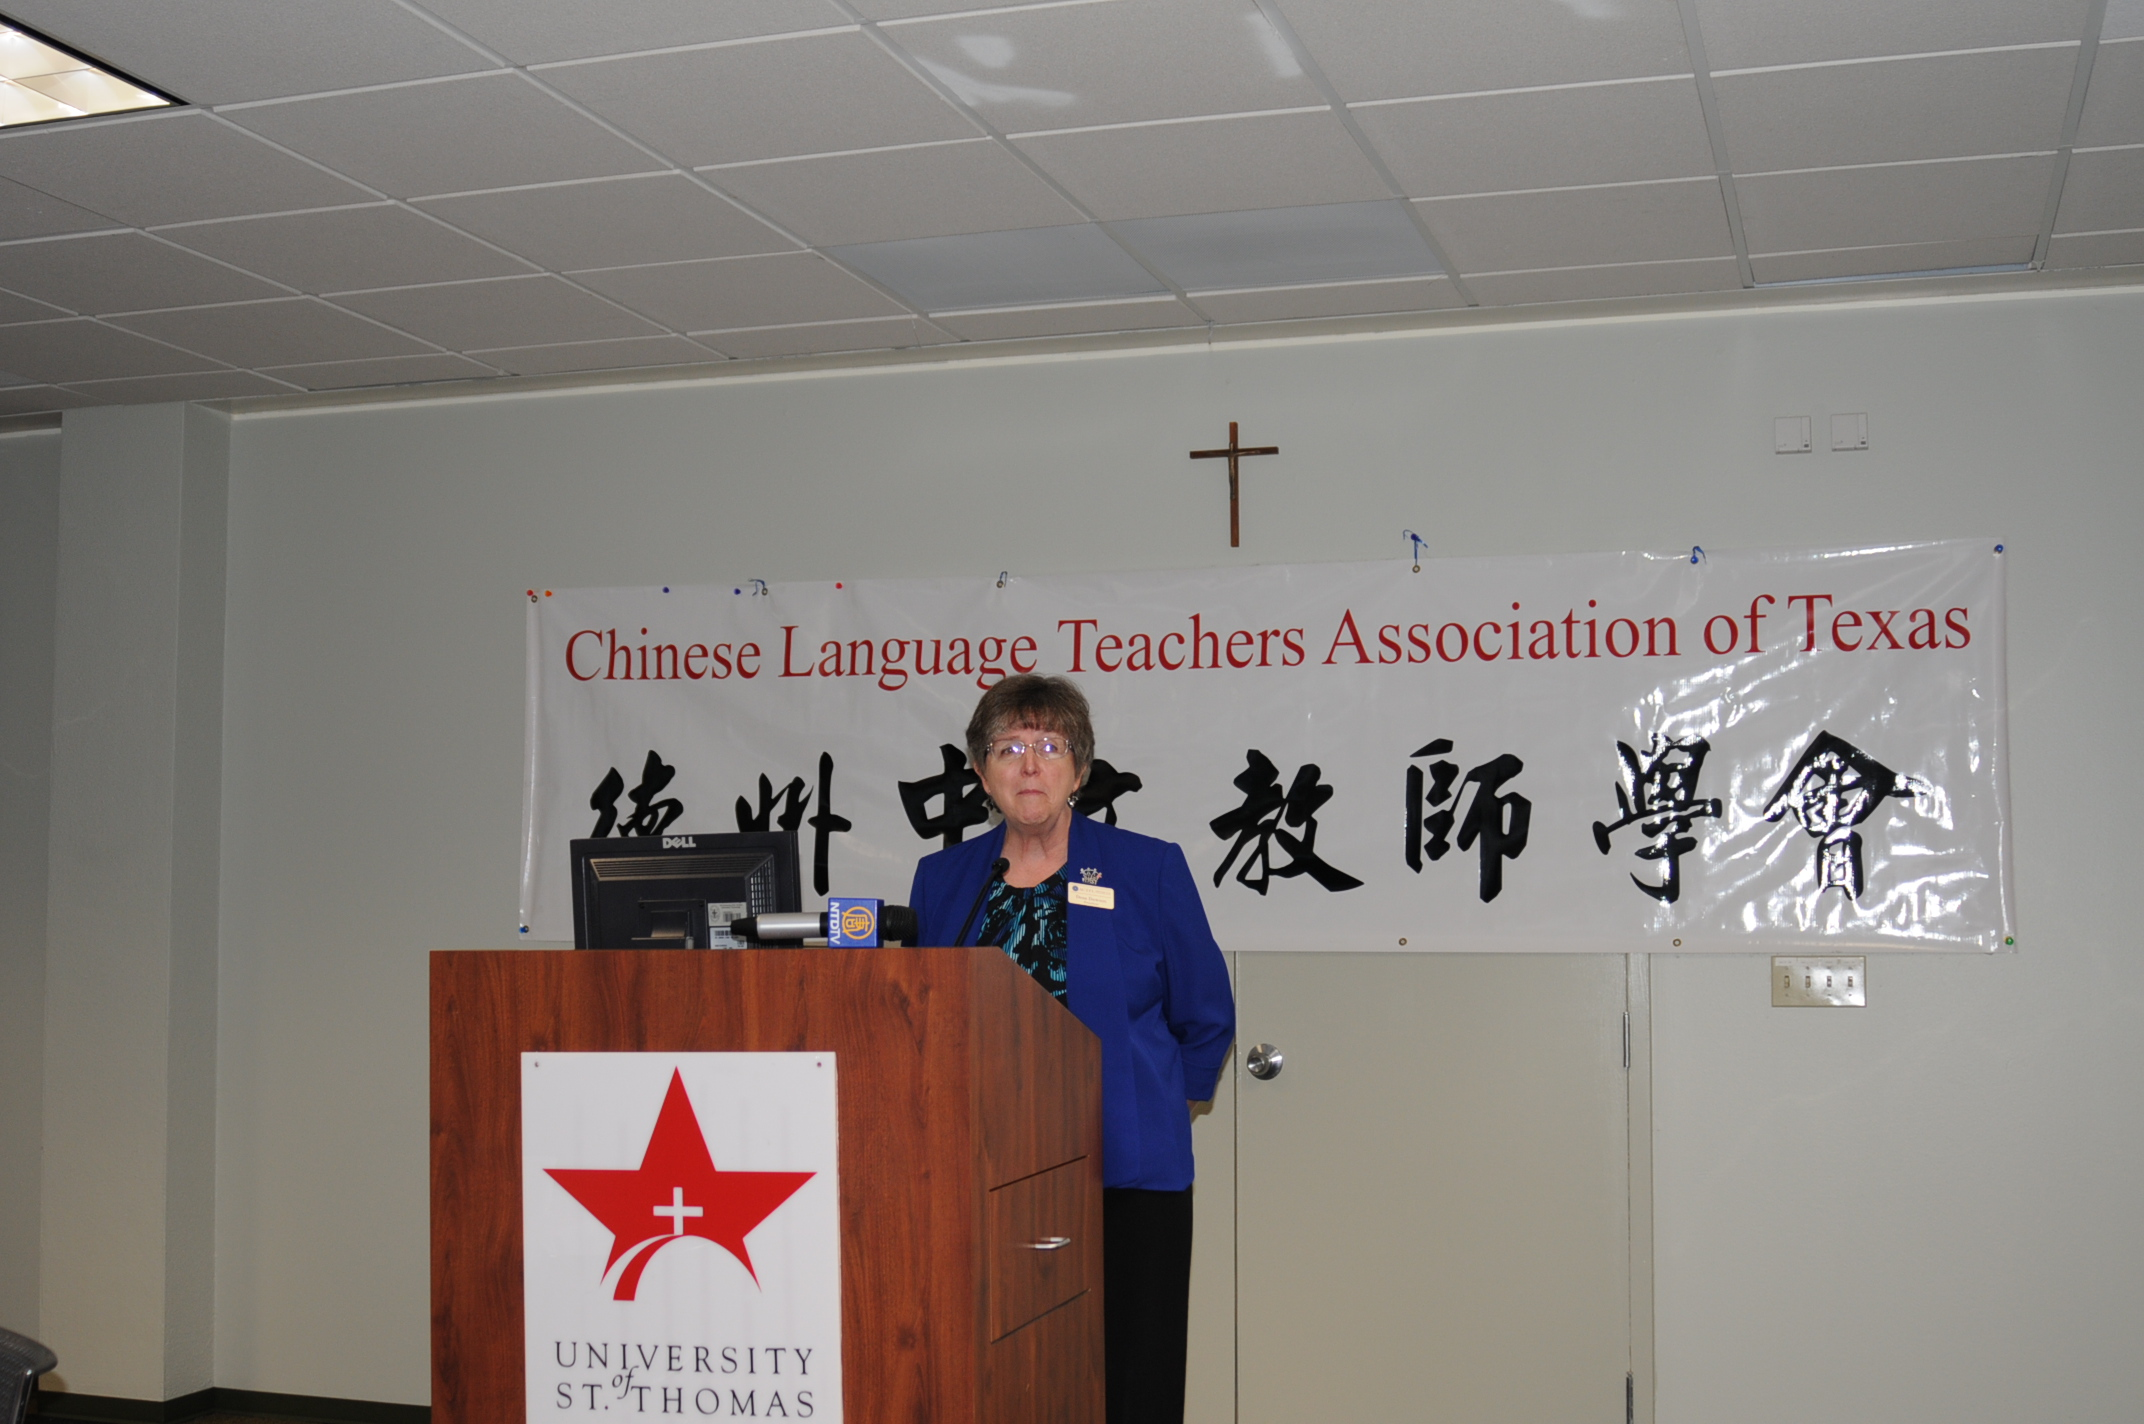 Ms. Desa Dawson: Honorable Keynote Speaker, President of American Council on the Teaching of Foreign Languages